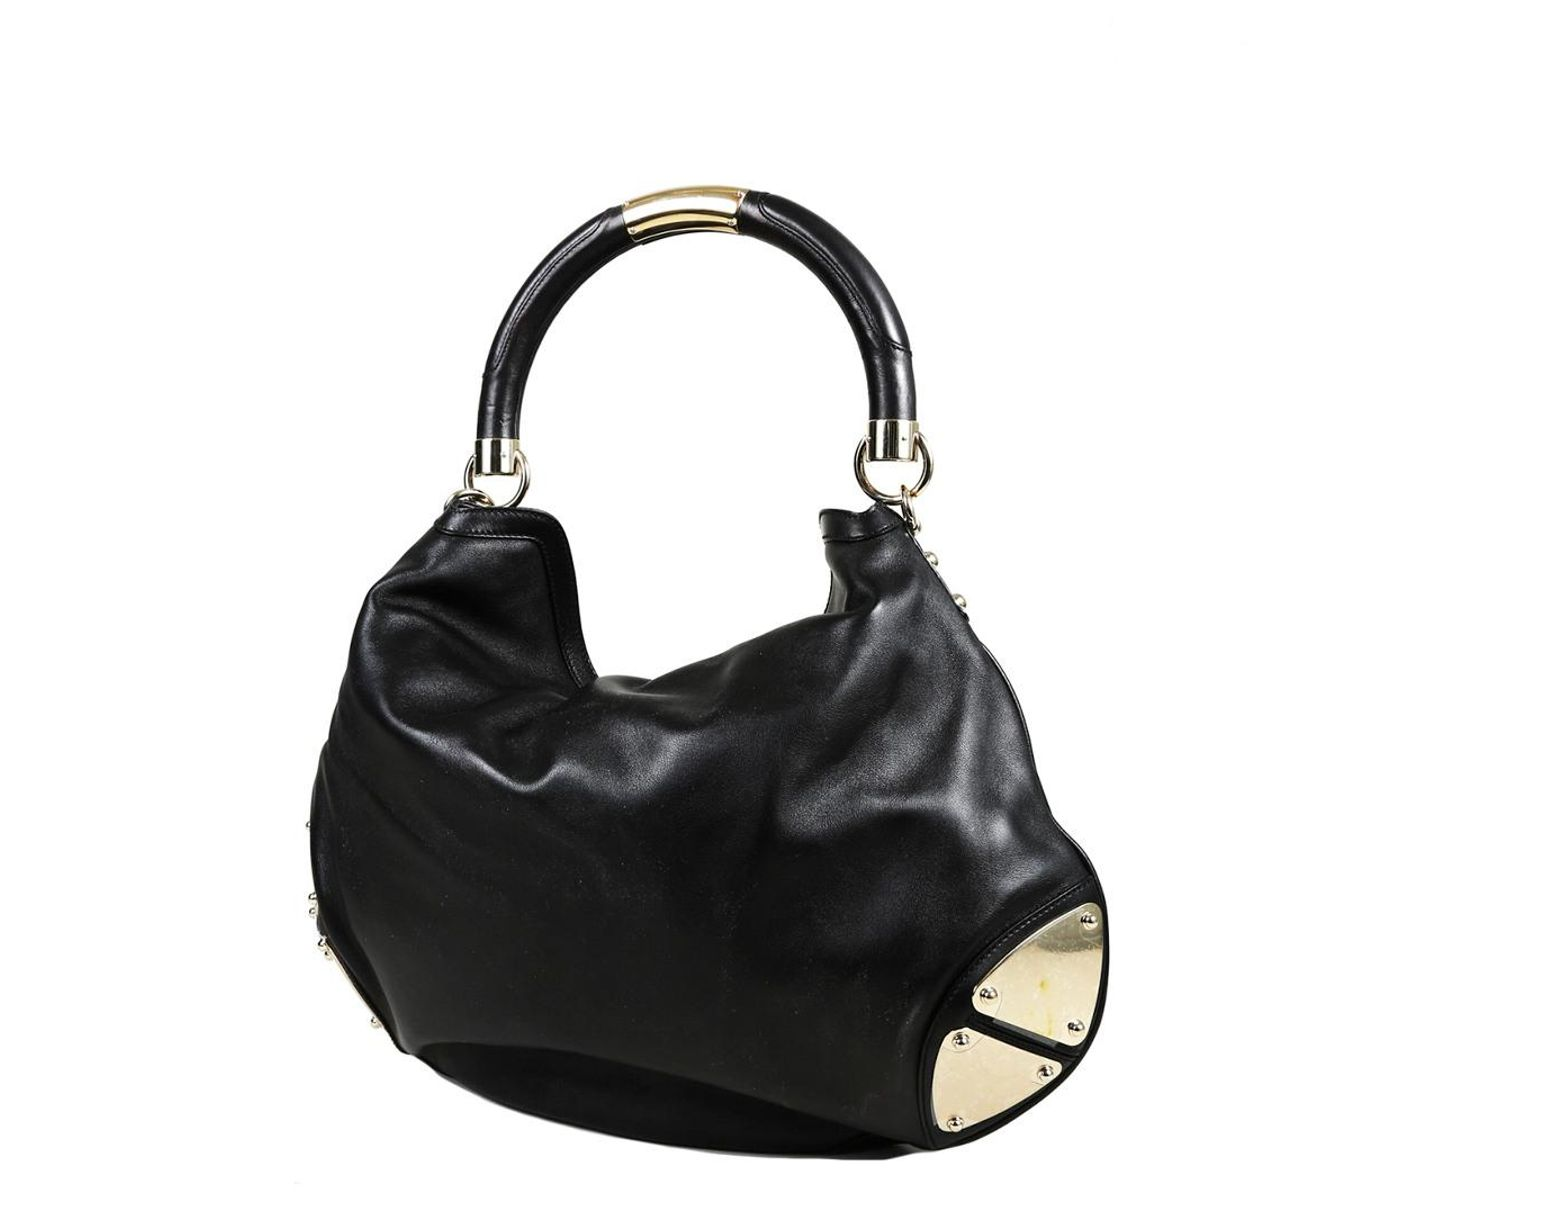 587743b0a06 Gucci Black Leather Babouska Indy Hobo Bag in Black - Lyst